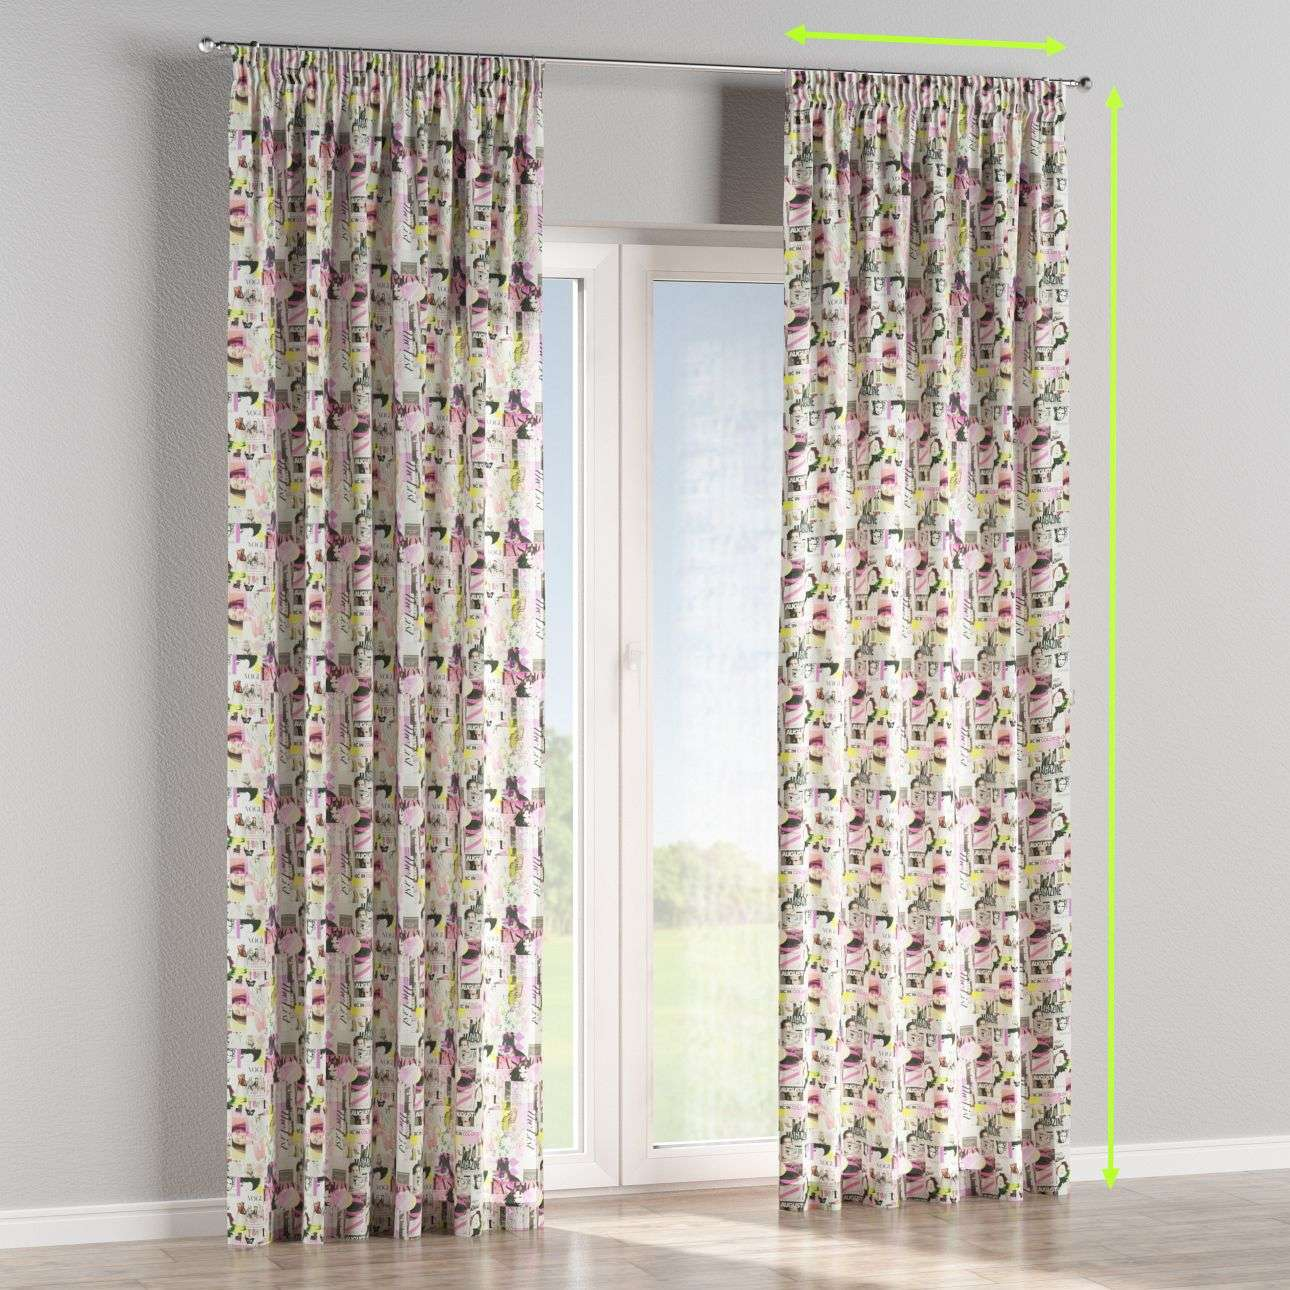 Pencil pleat curtains in collection Freestyle, fabric: 135-15